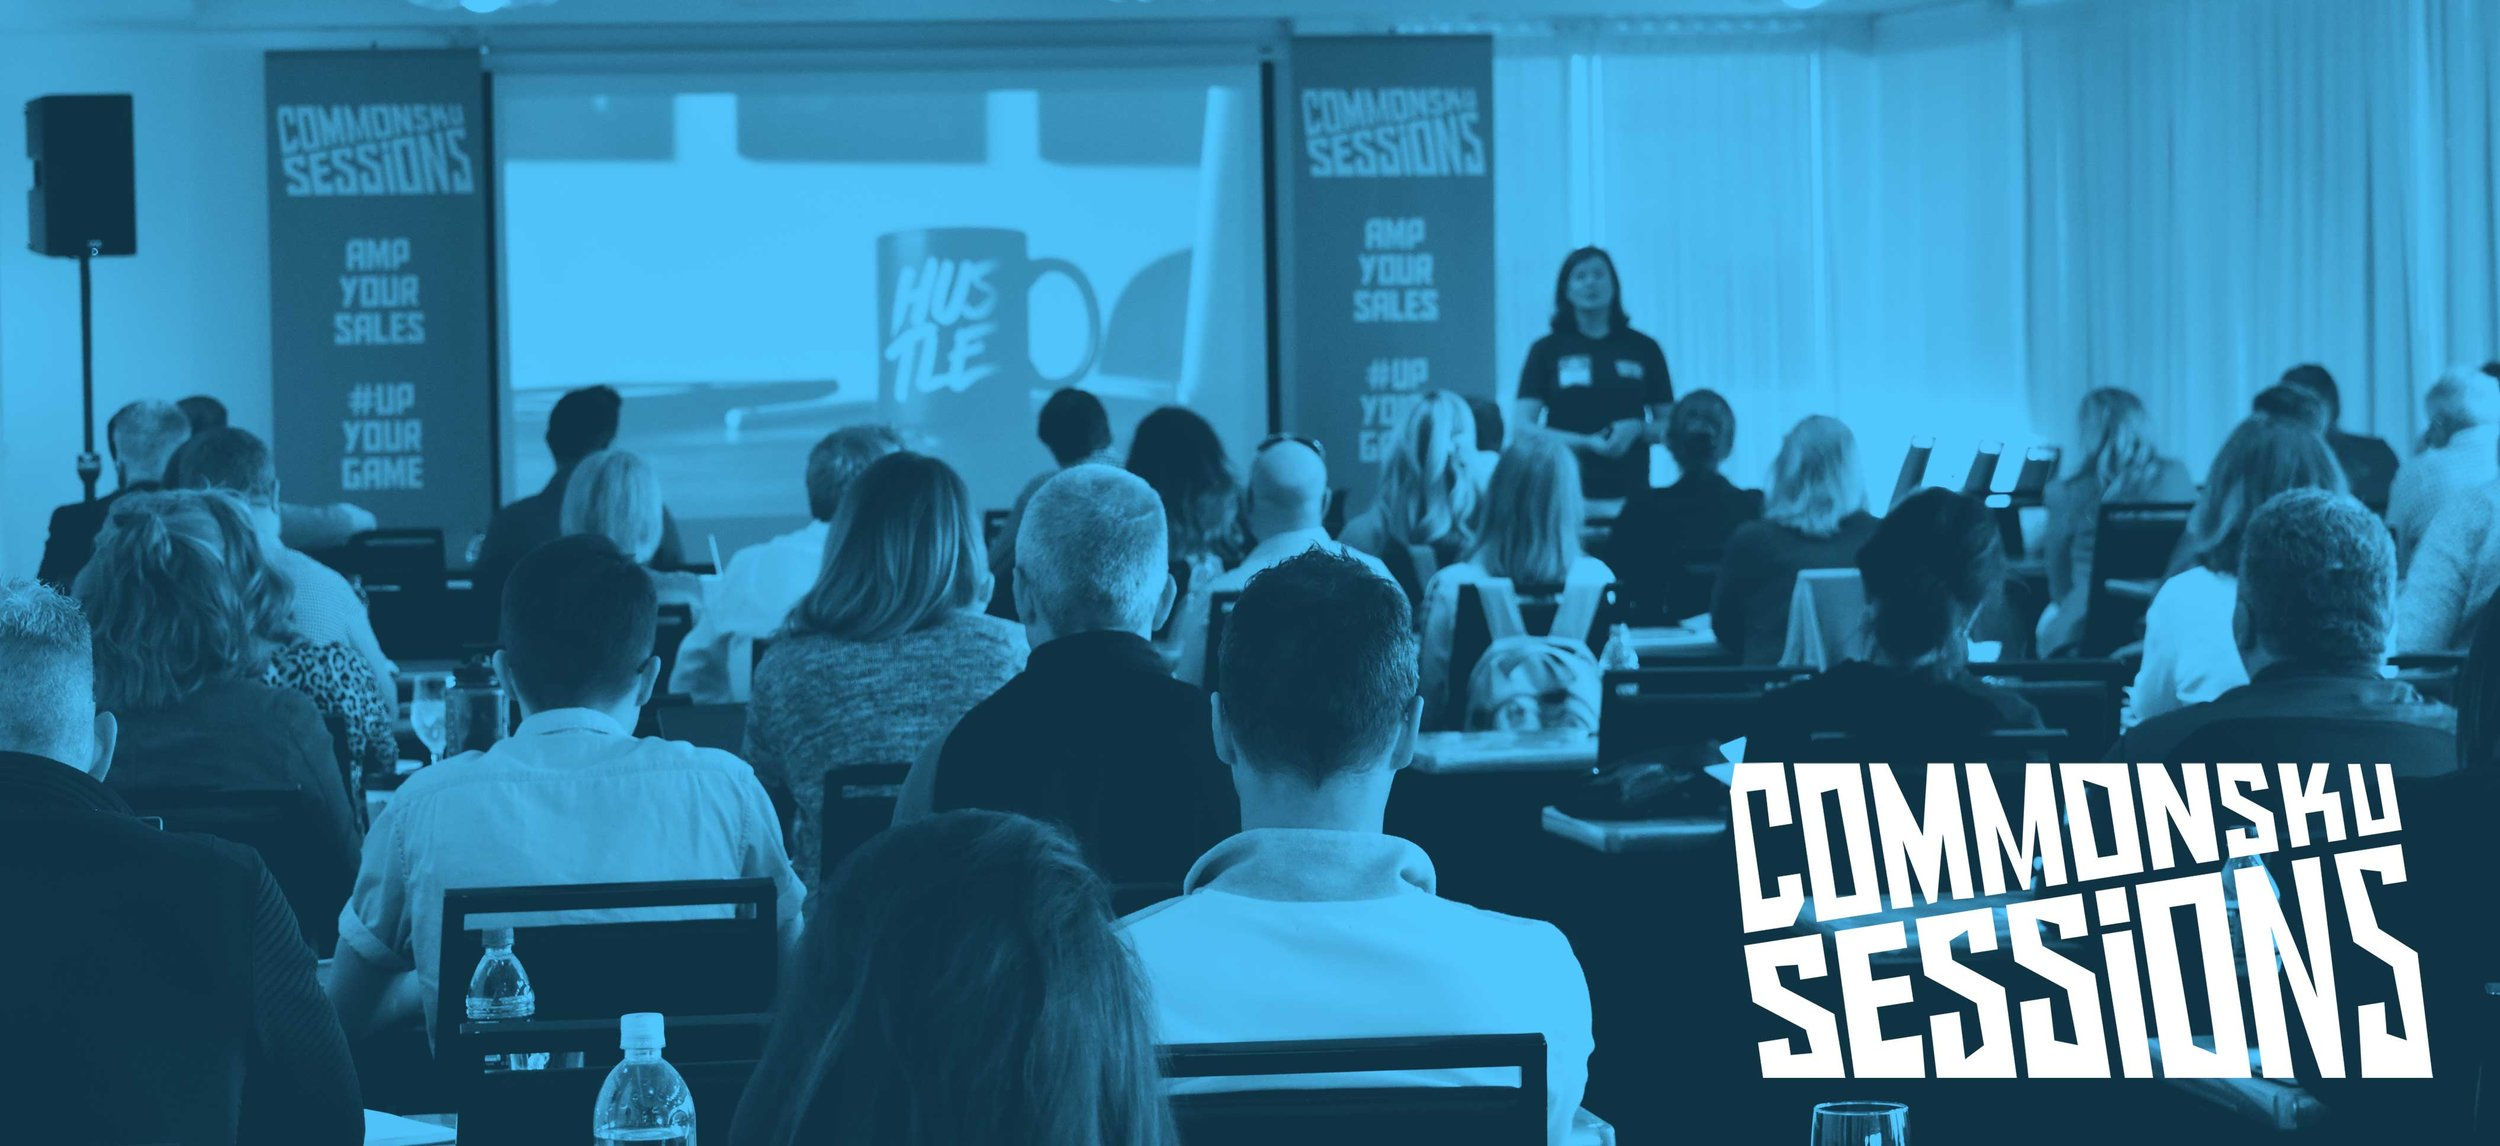 sessions2019-dallas-pic-overlay-resize2.jpg